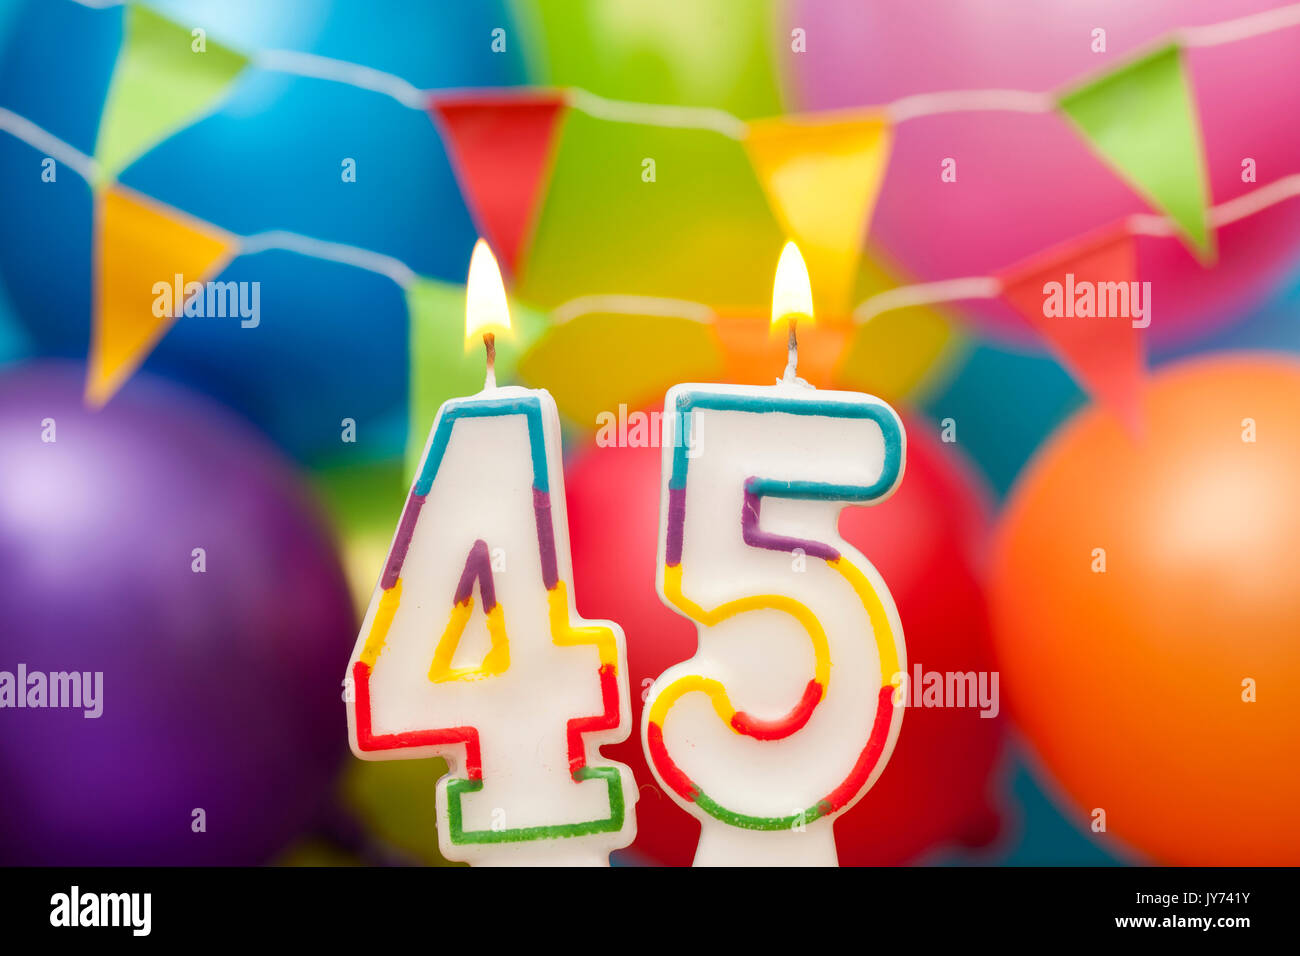 Happy Birthday Number 45 Celebration Candle With Colorful Balloons And Bunting